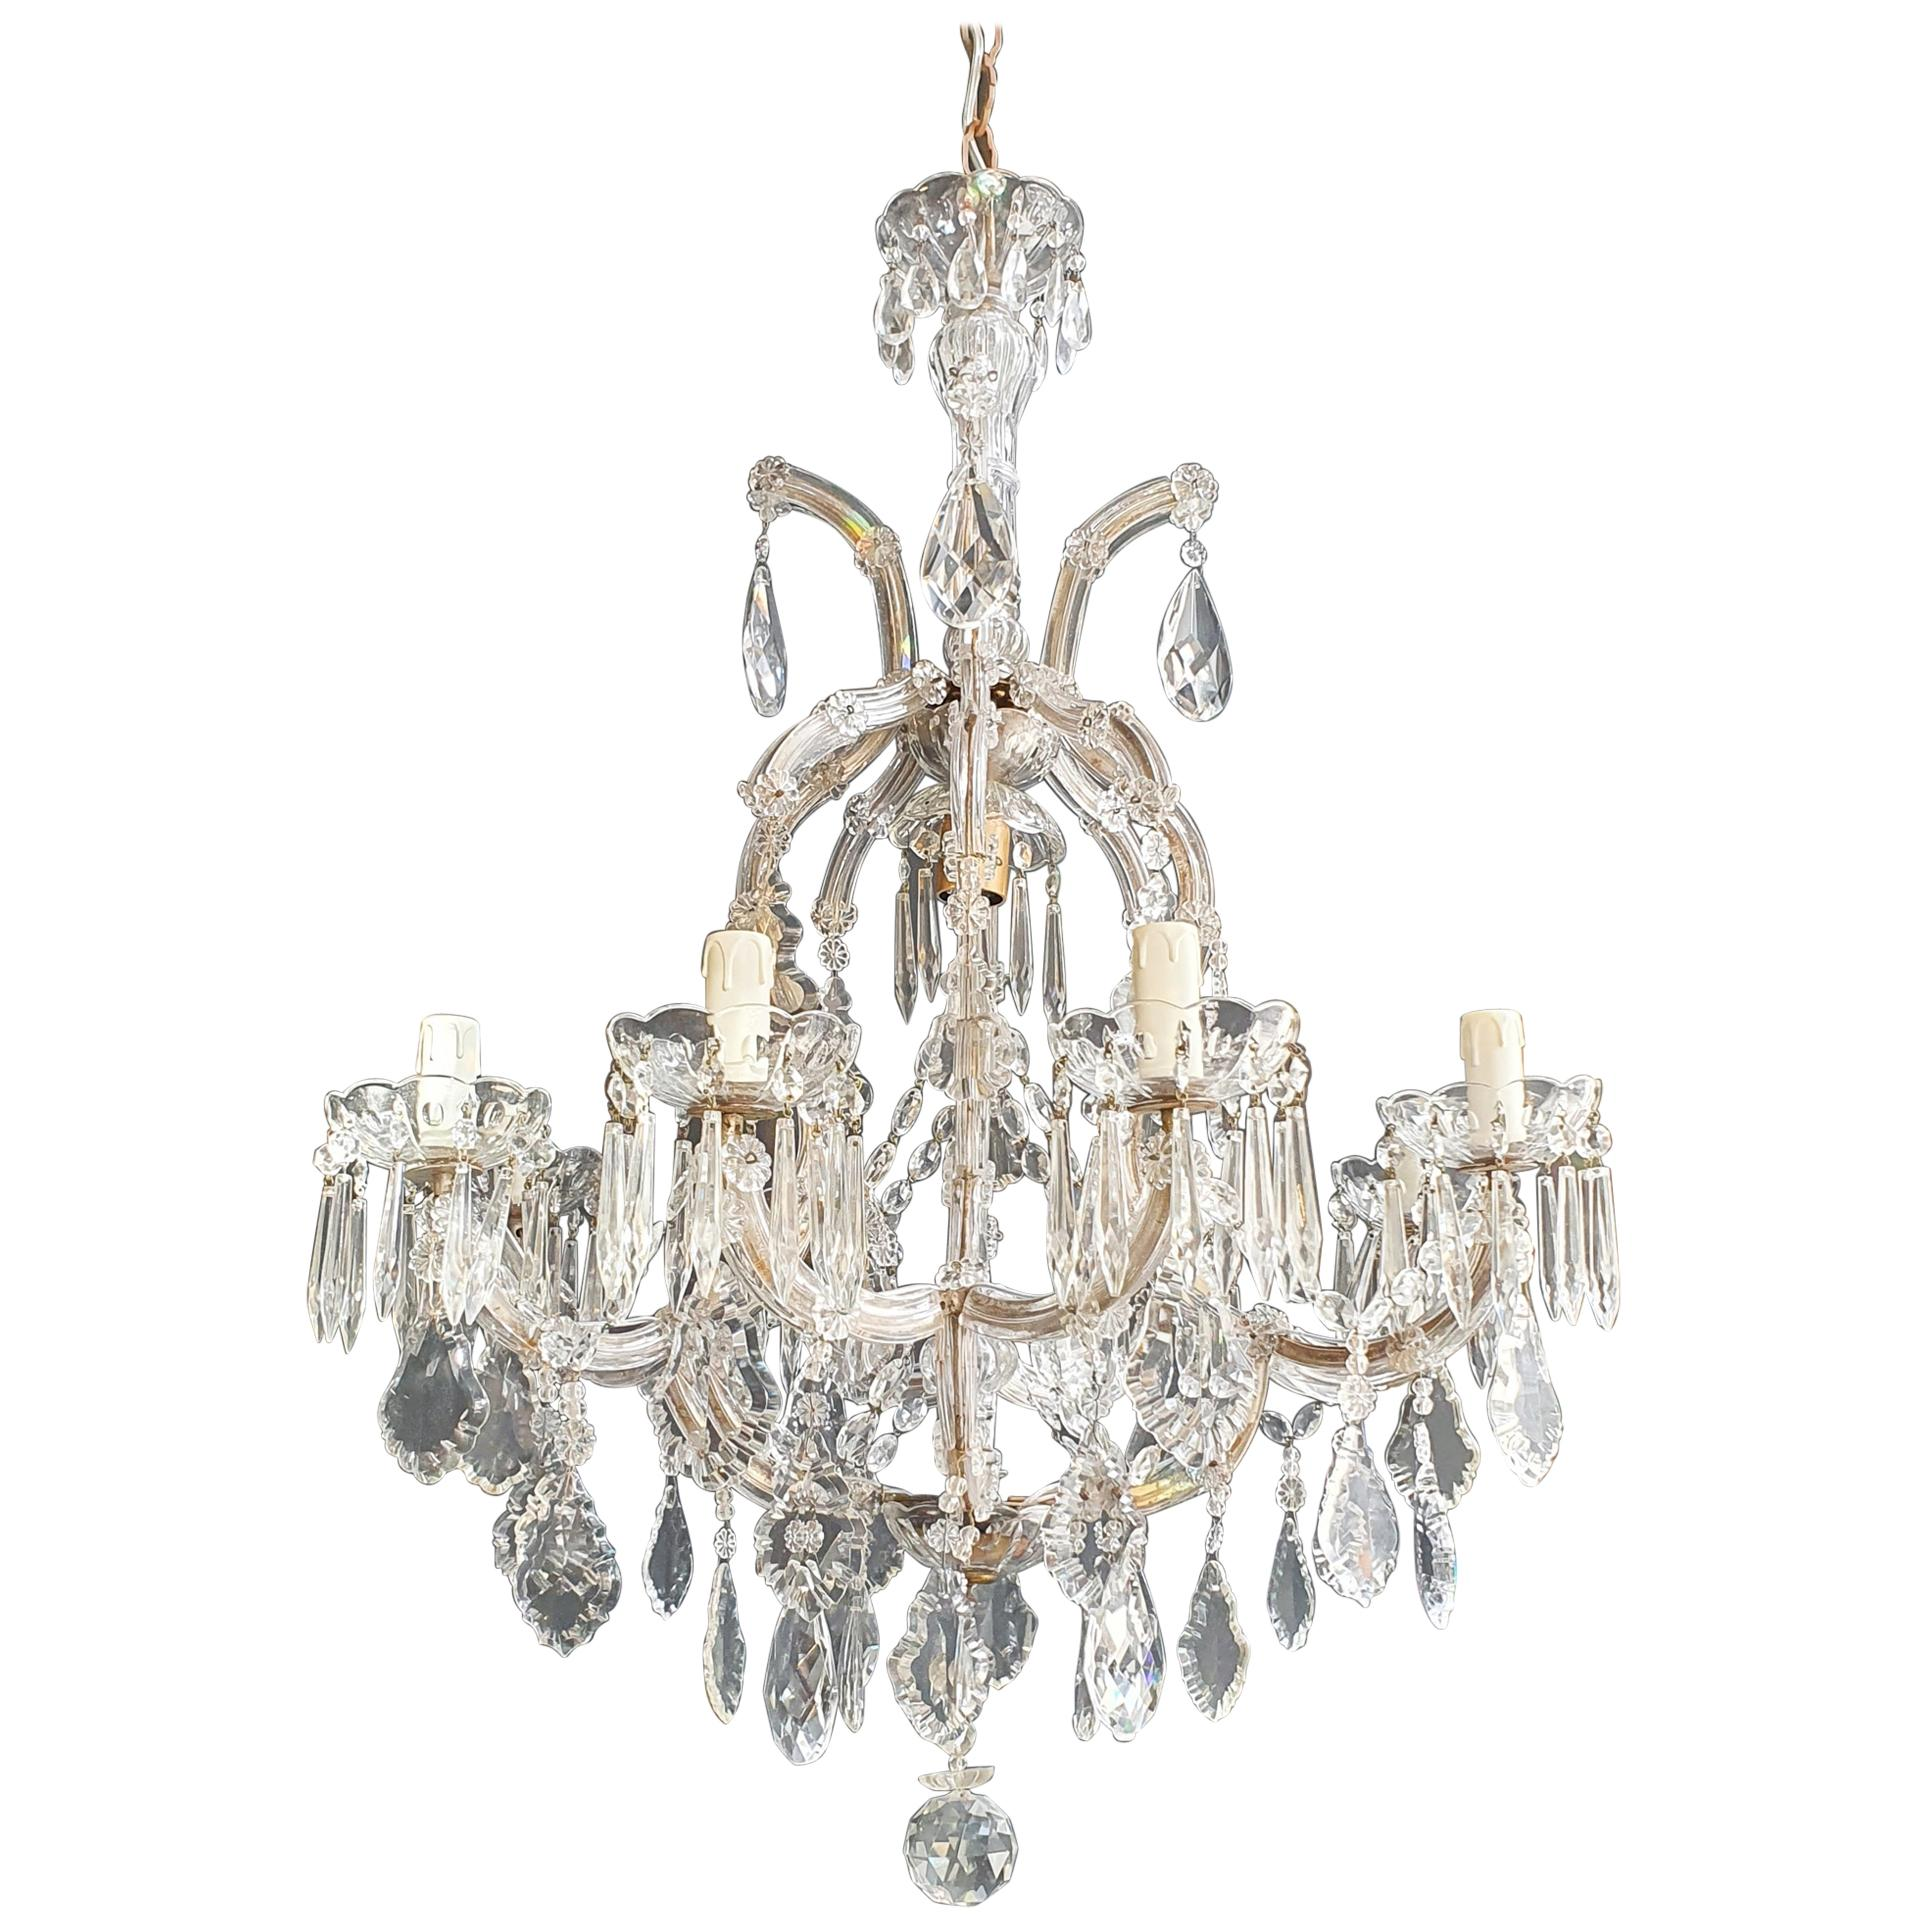 Maria Theresa Crystal Chandelier Antique Ceiling Lamp Luster Art Nouveau